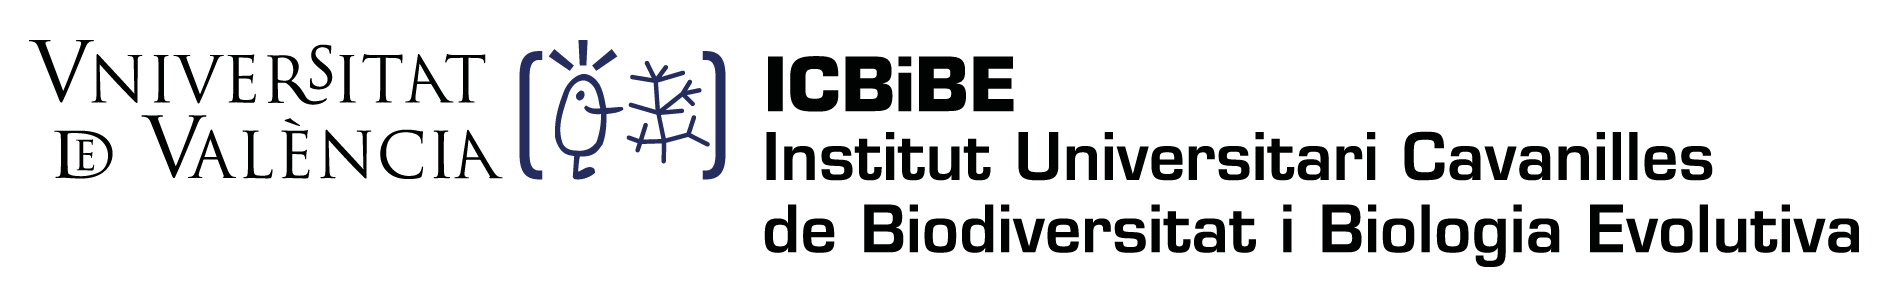 Cavanilles Institute of Biodiversity and Evolutionary Biology (UV)